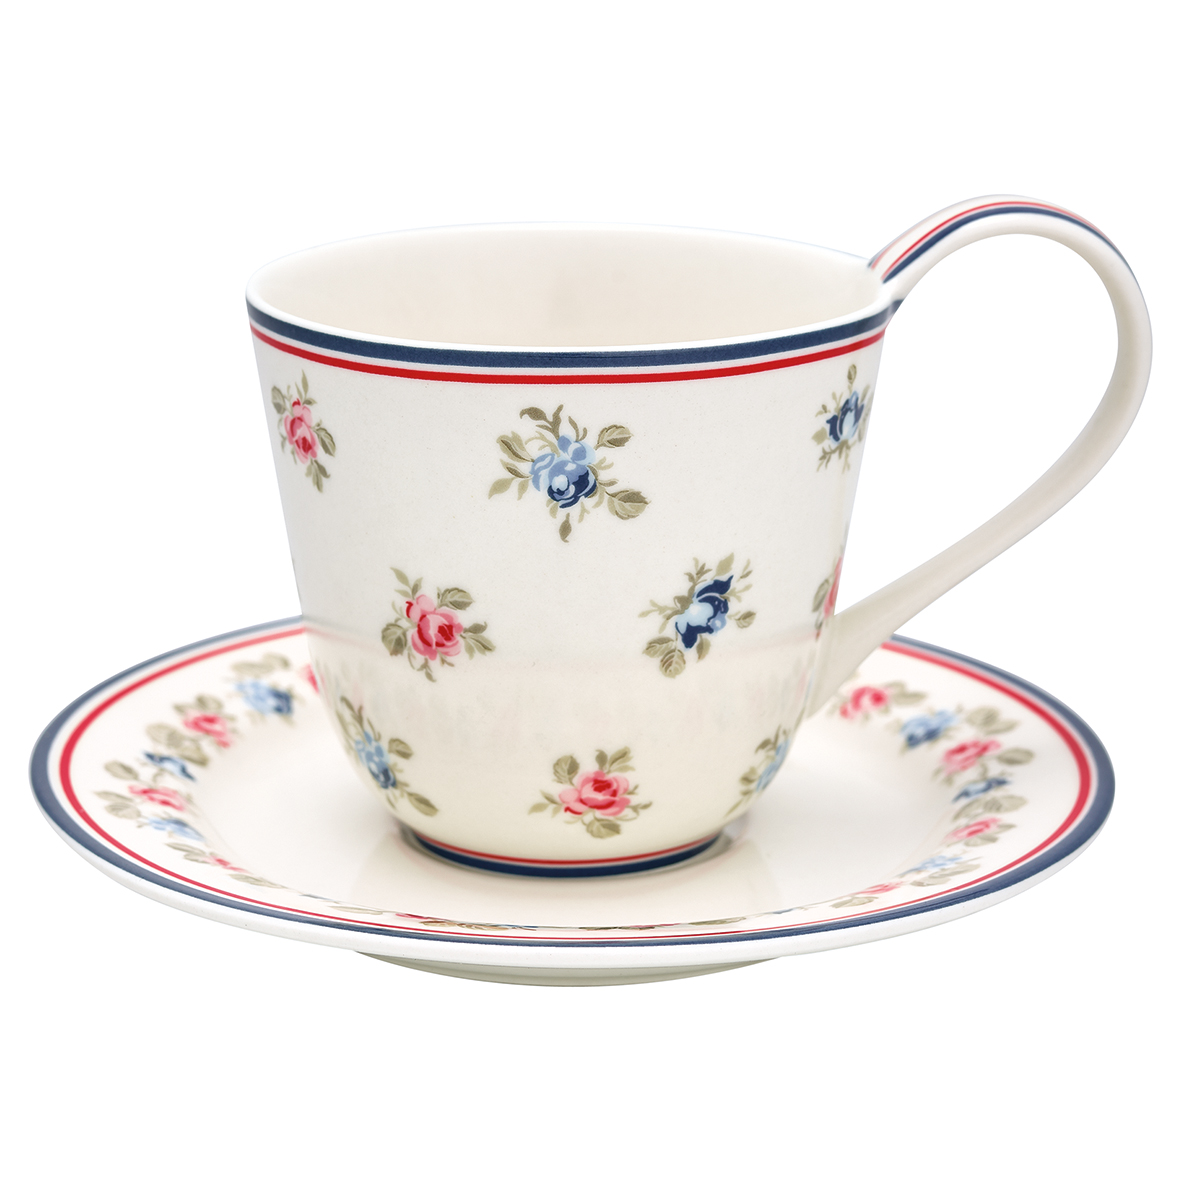 GreenGate Cup & Saucer - Kop m/underkop - Hailey White